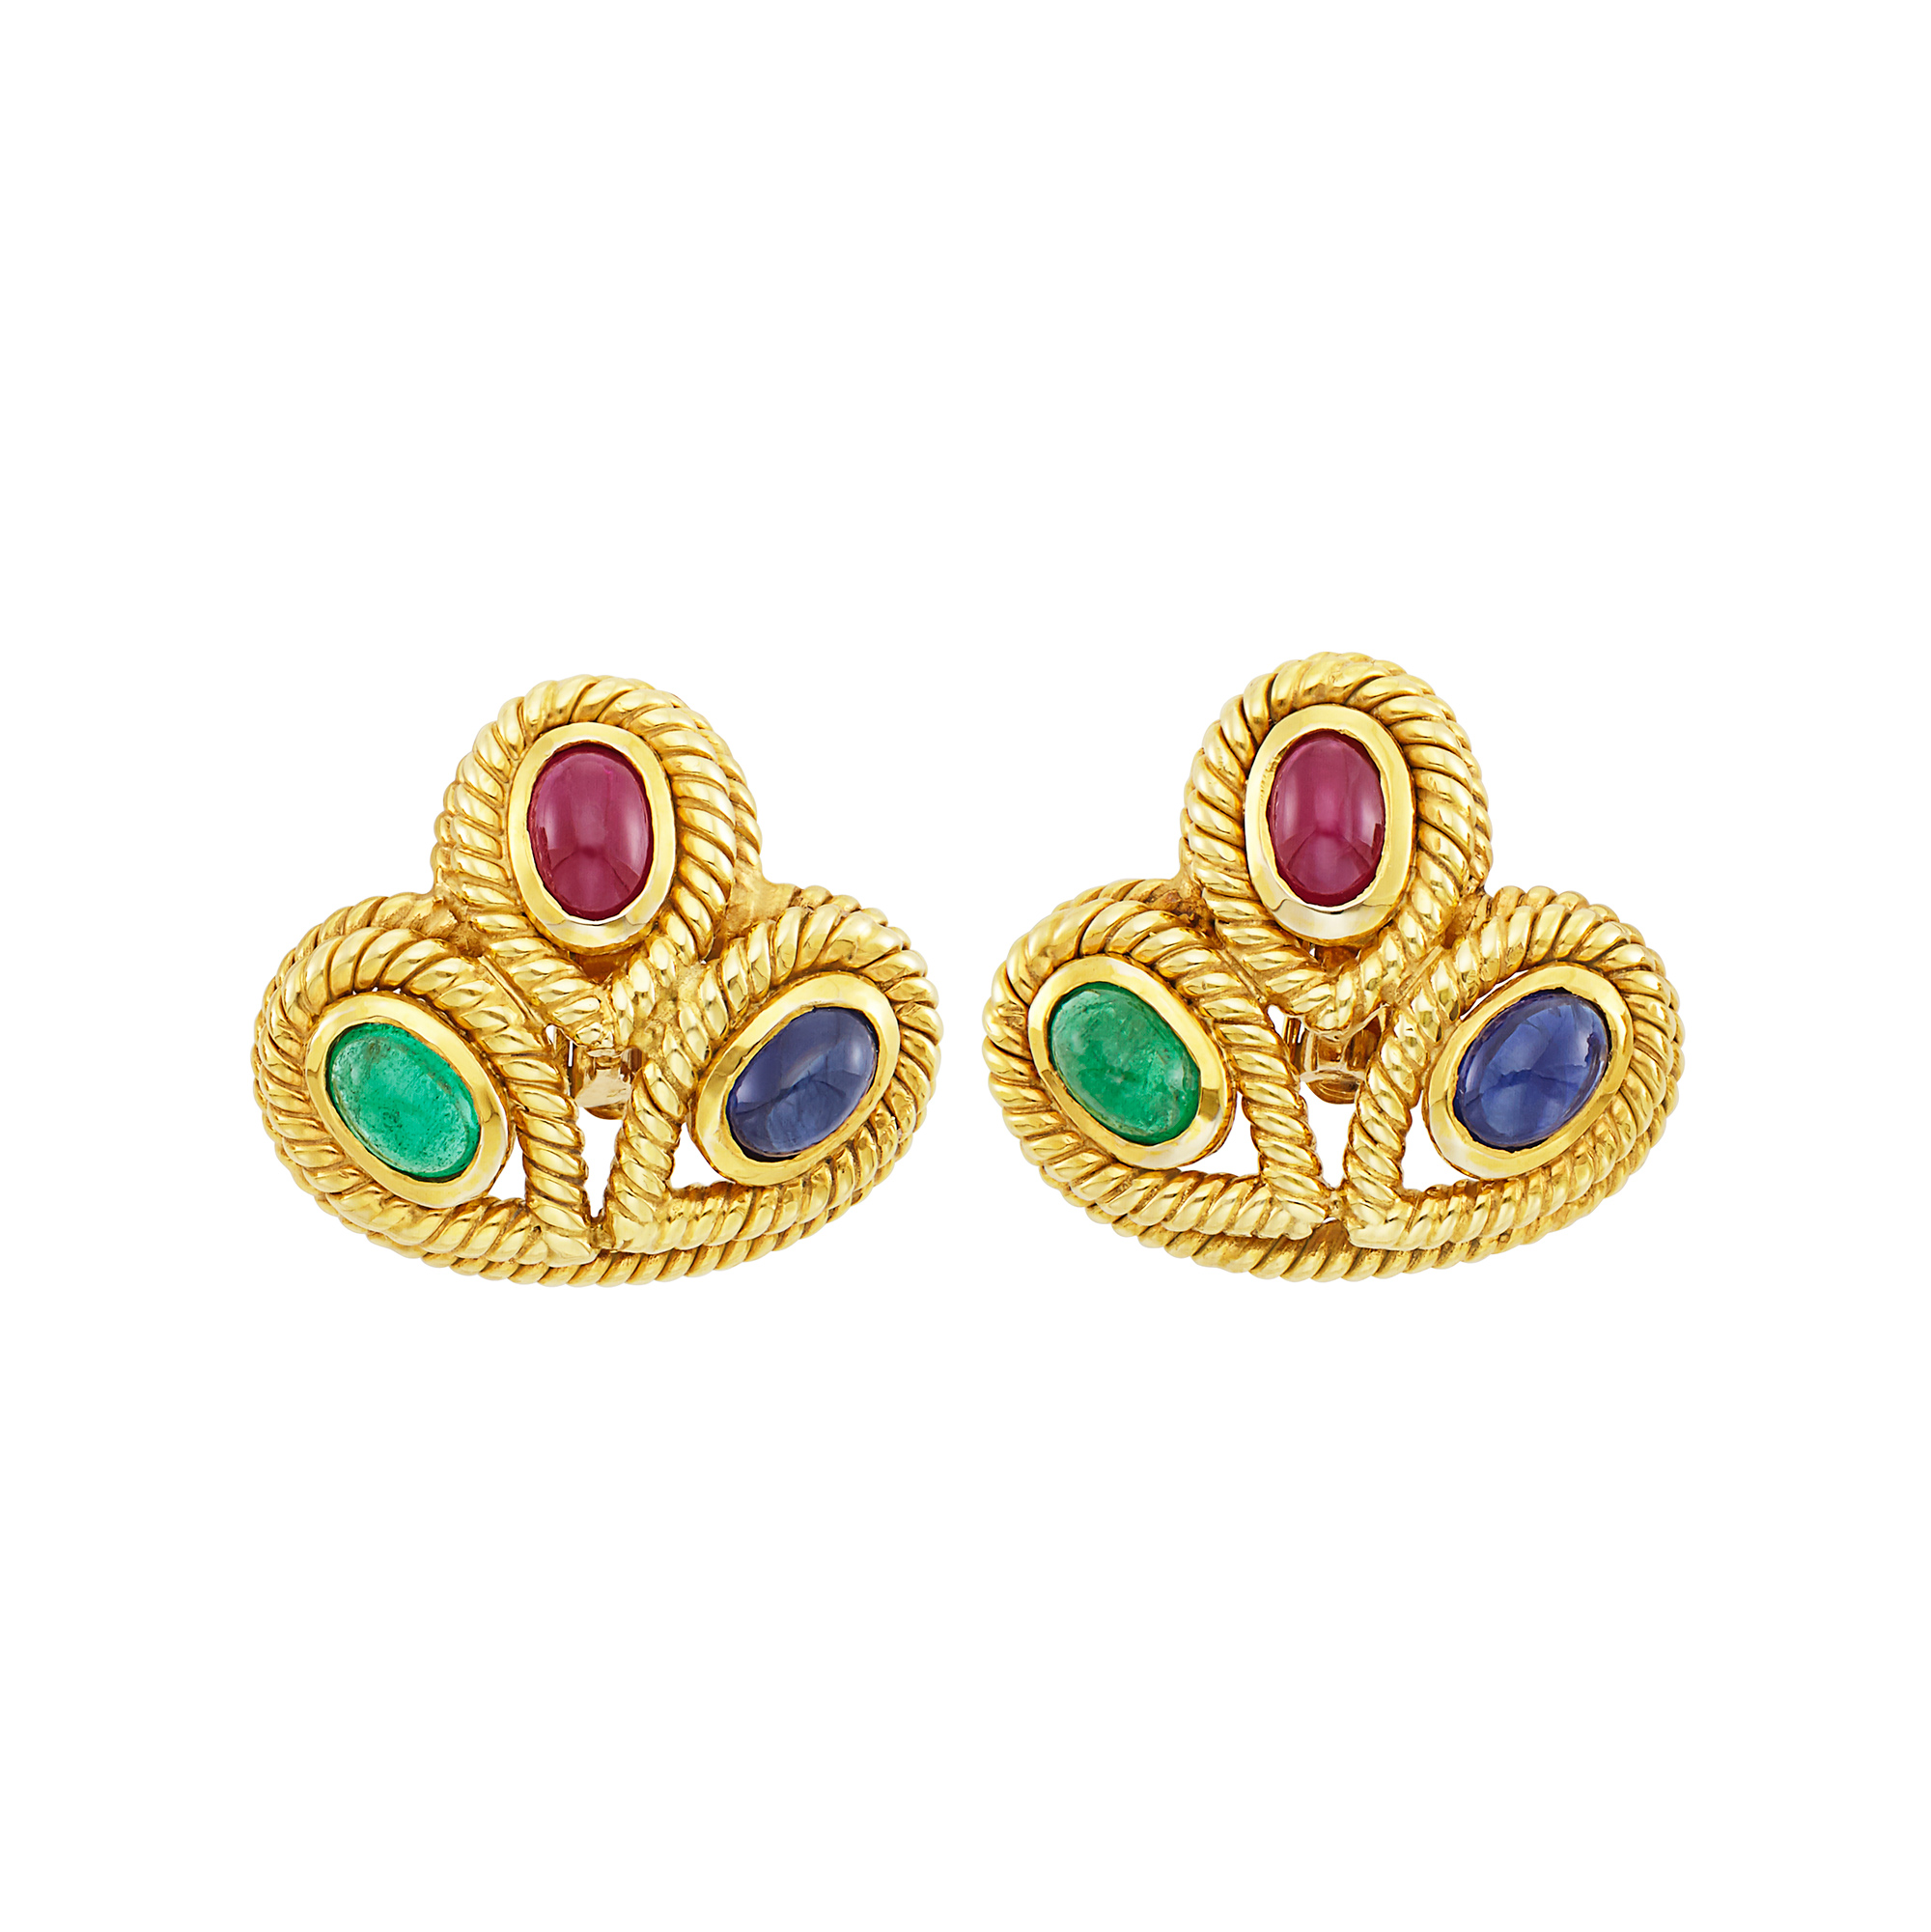 Lot image - Pair of Gold and Cabochon Colored Stone Earclips